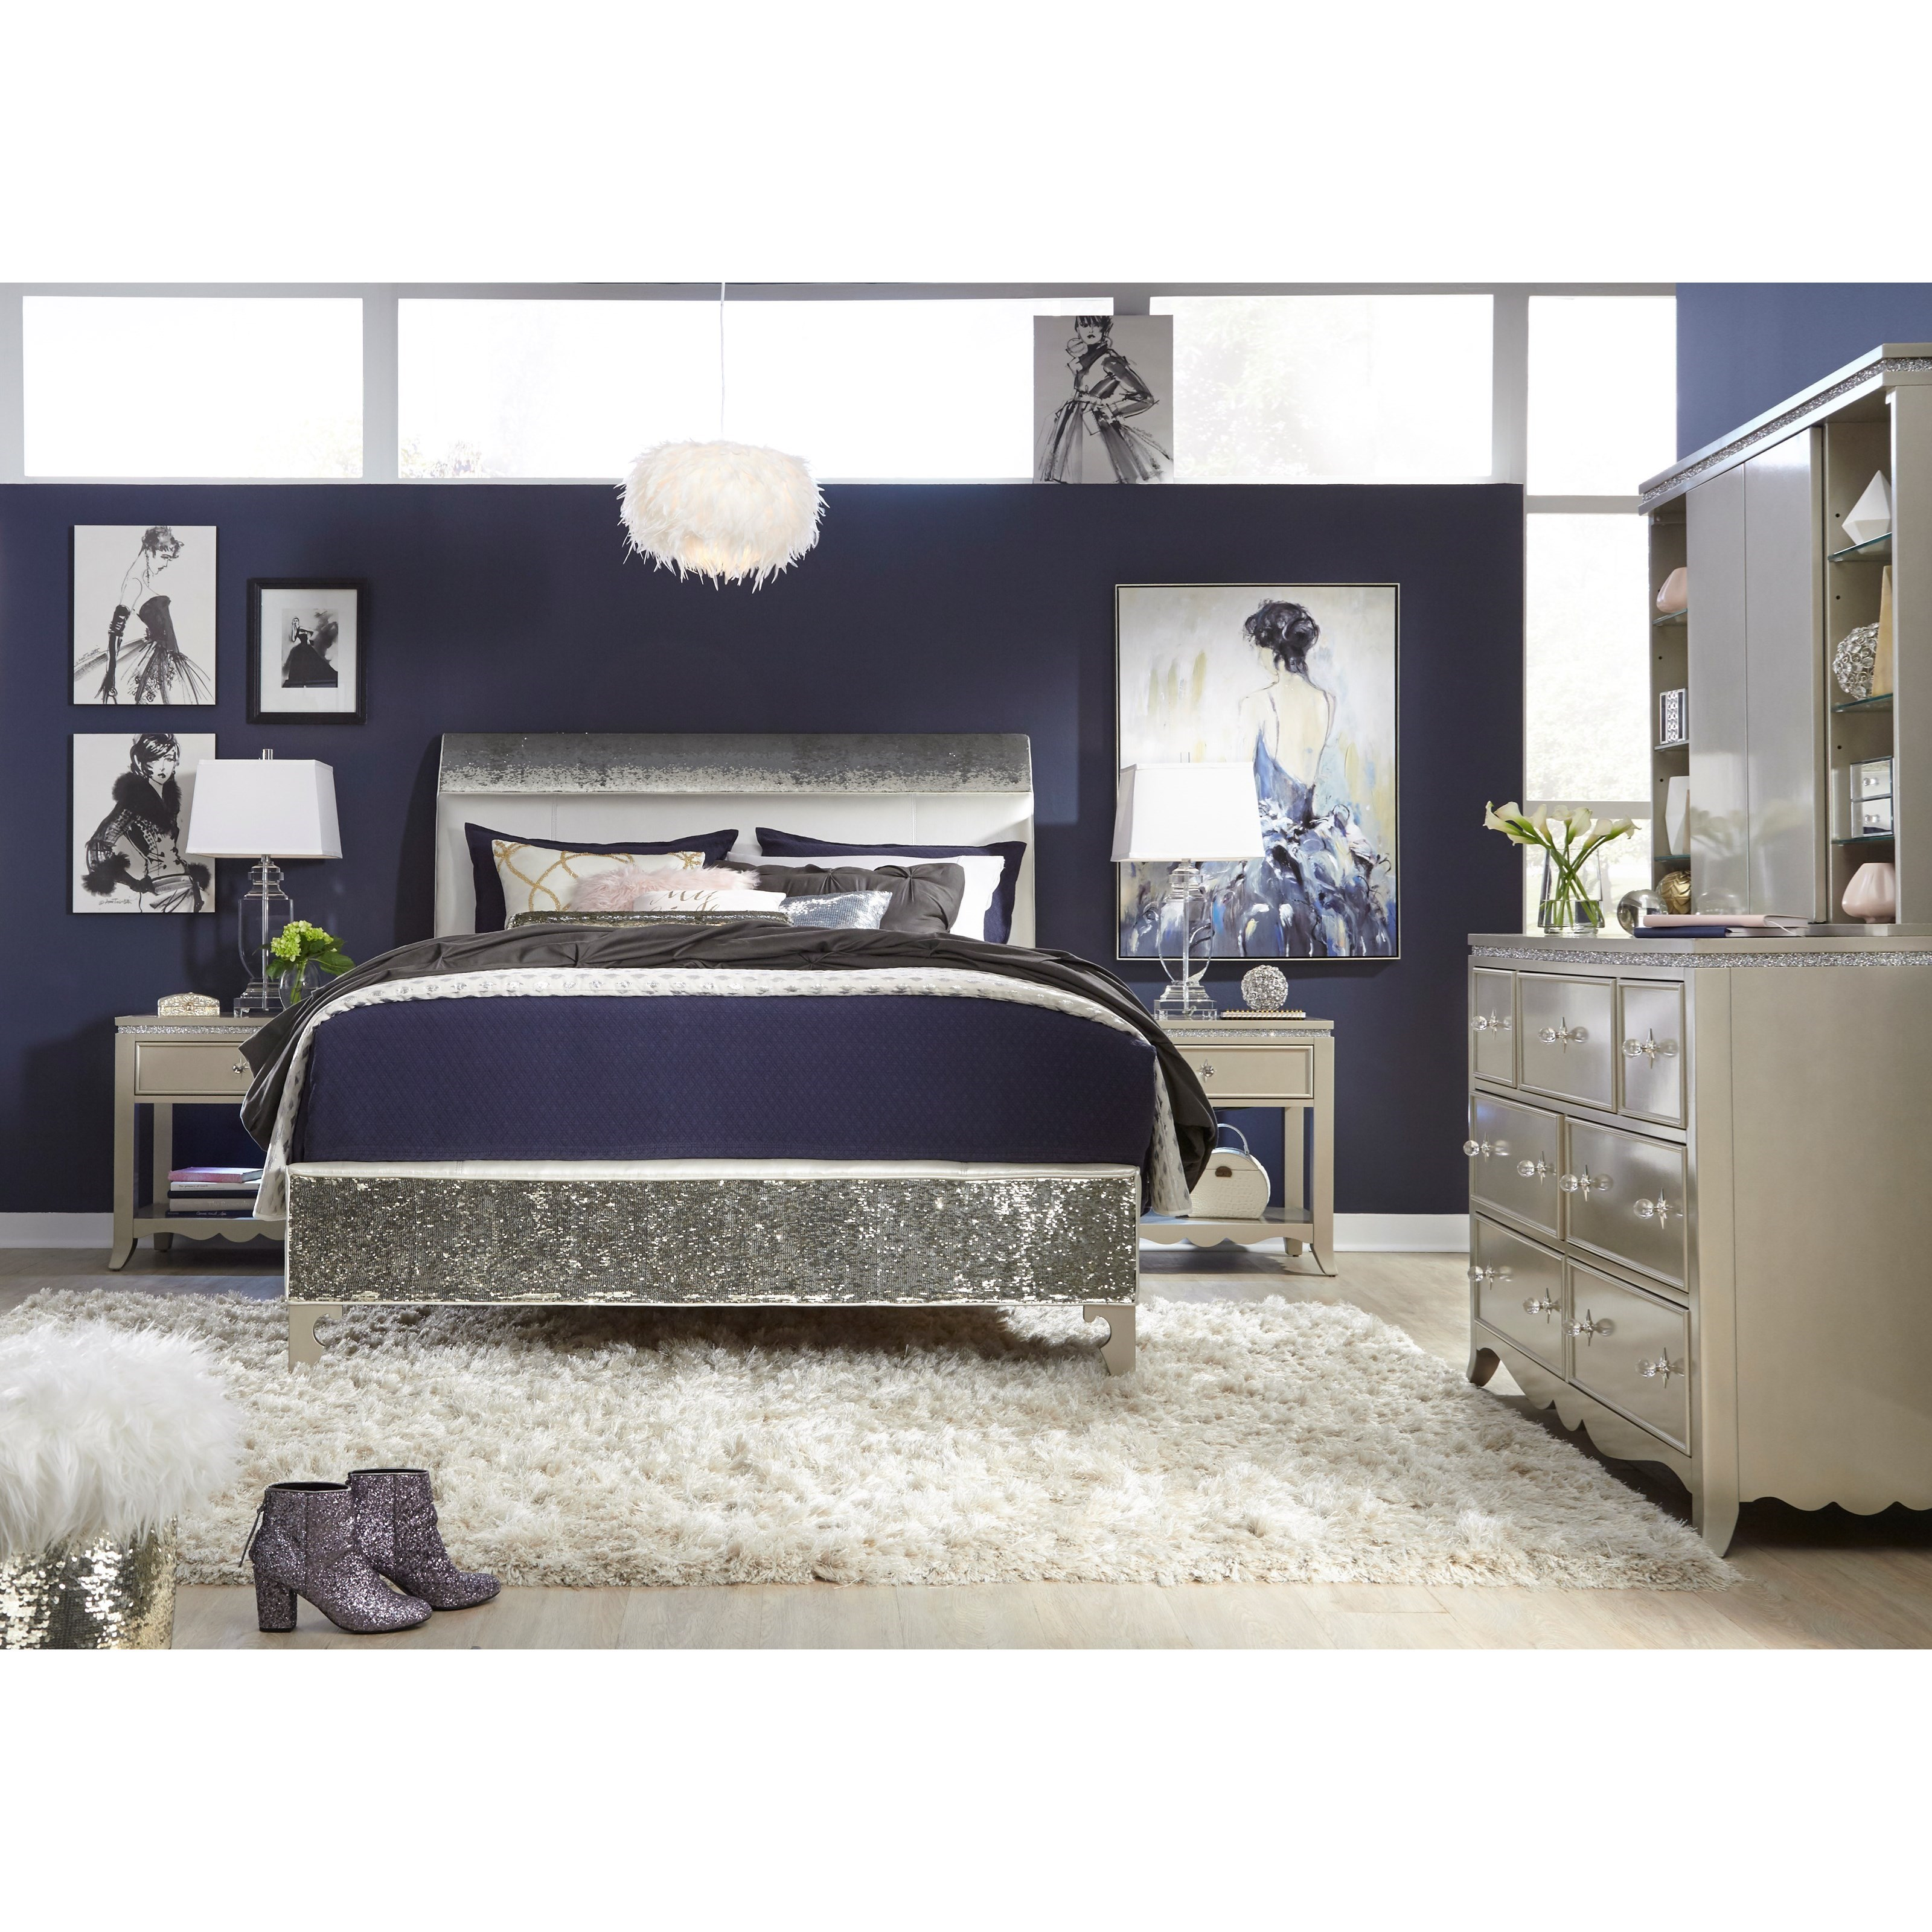 Kids Queen Bed Glitz And Glam Queen Bedroom Group By Legacy Classic Kids At Lindy S Furniture Company